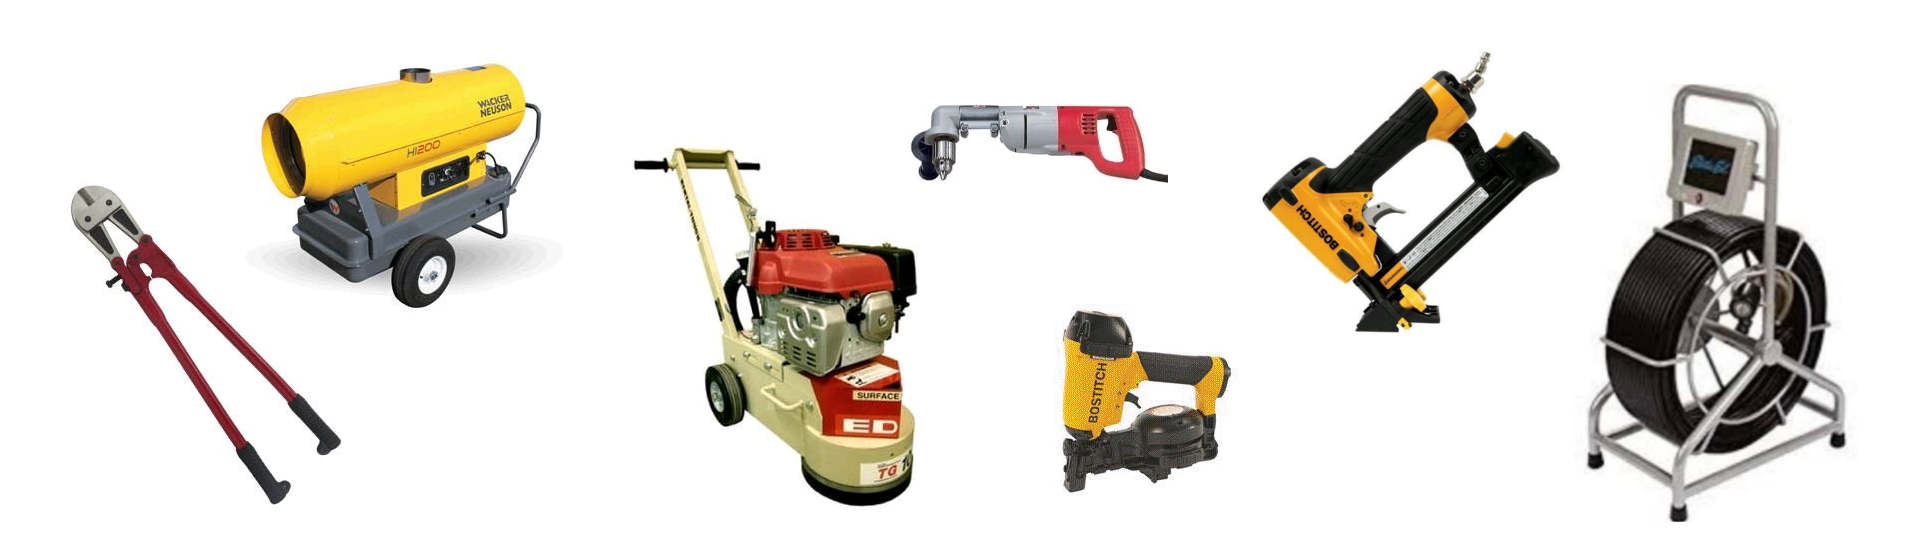 Tool Rental Store in Silicon Valley, San Jose, Santa Clara, Campbell, Los Gatos, Cupertino, Willow Glen